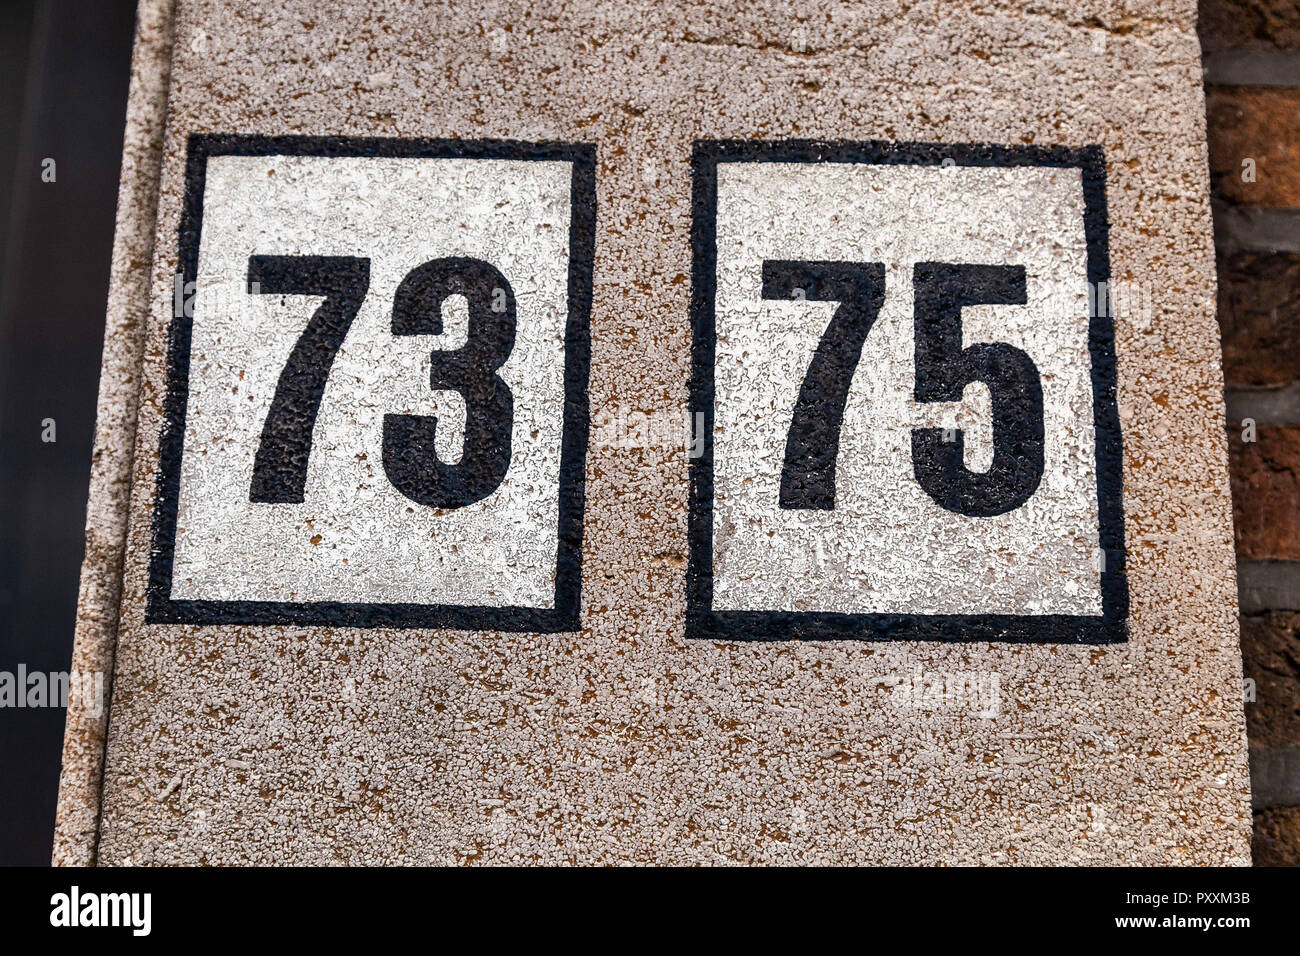 House numbers from France, Belgium, Sweden, Denmark, Finland and